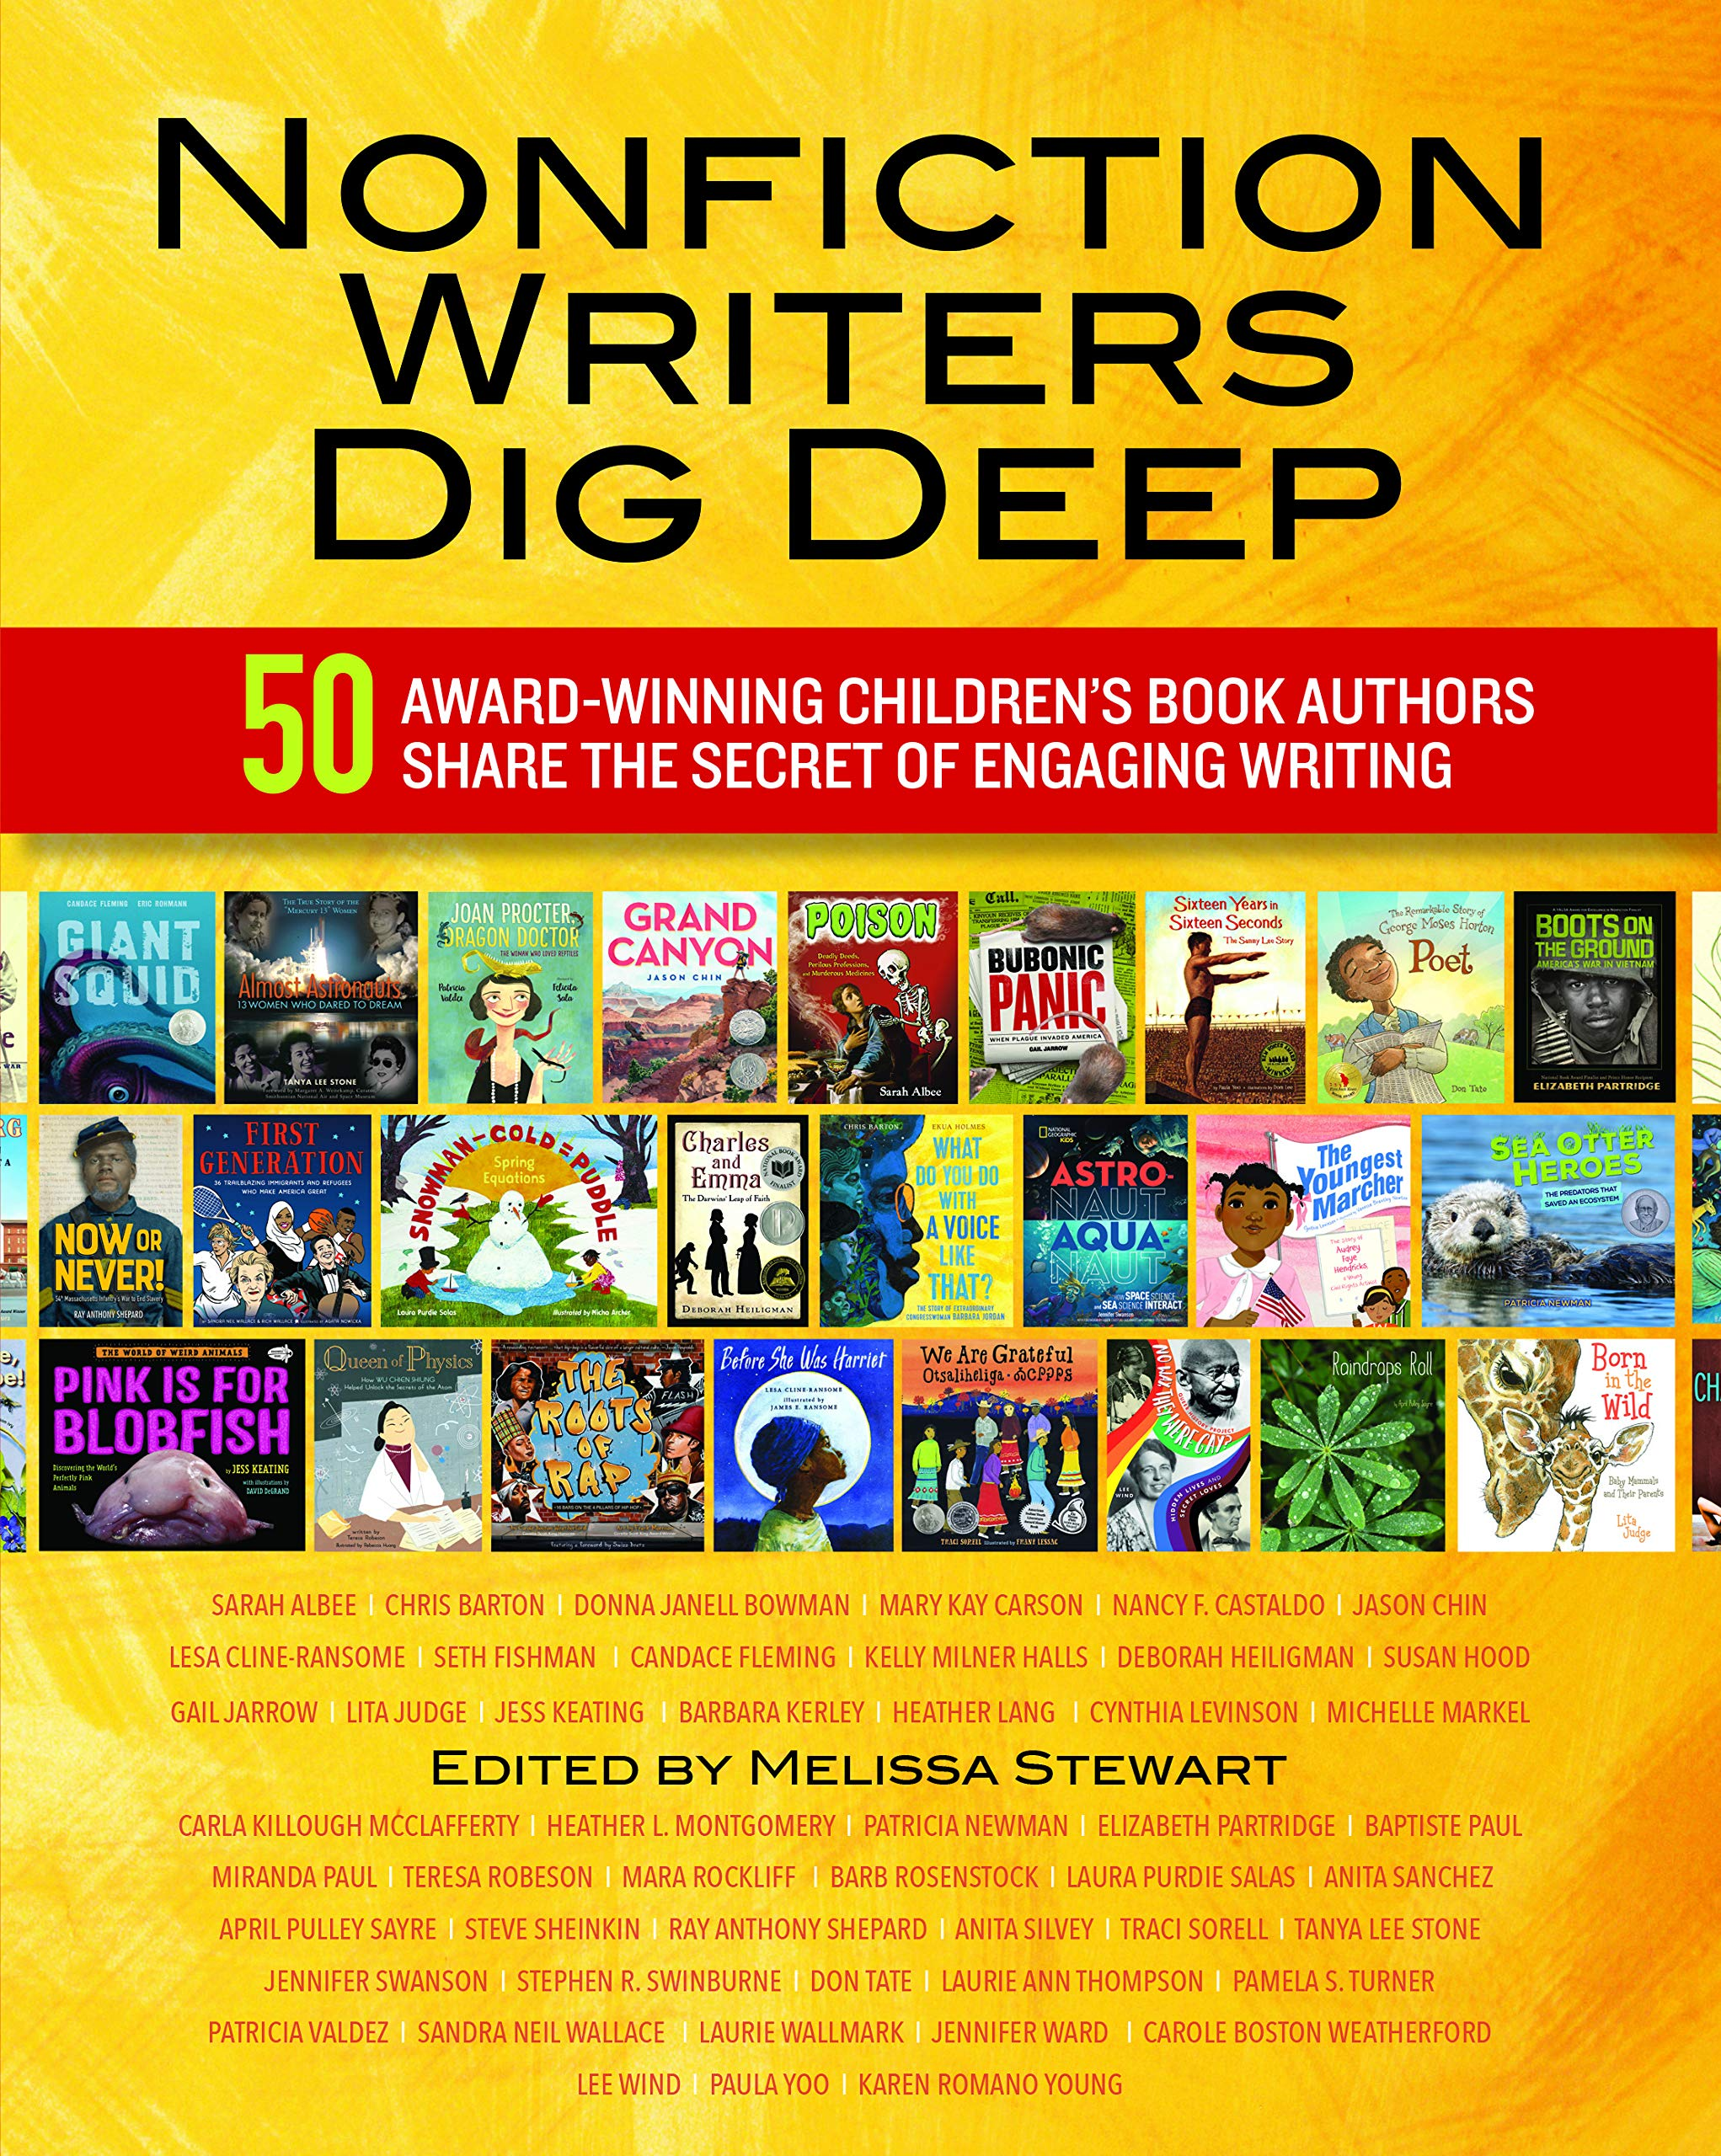 Nonfiction Writers Dig Deep: 50 Award-Winning Children's Book Authors Share the Secret of Engaging Writing